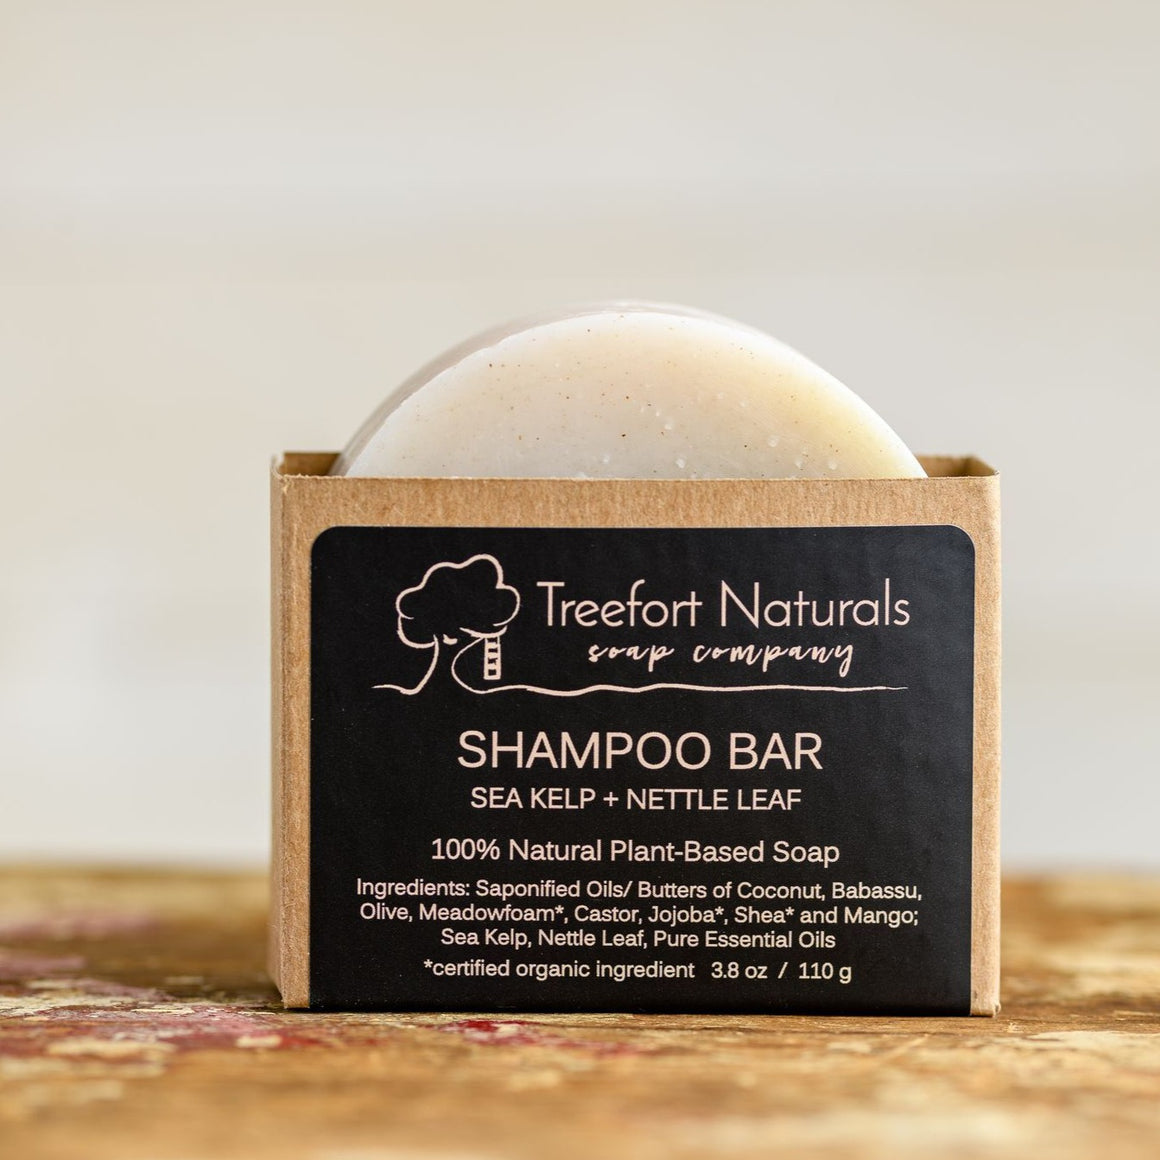 Sea Kelp + Nettle Leaf Shampoo Bar